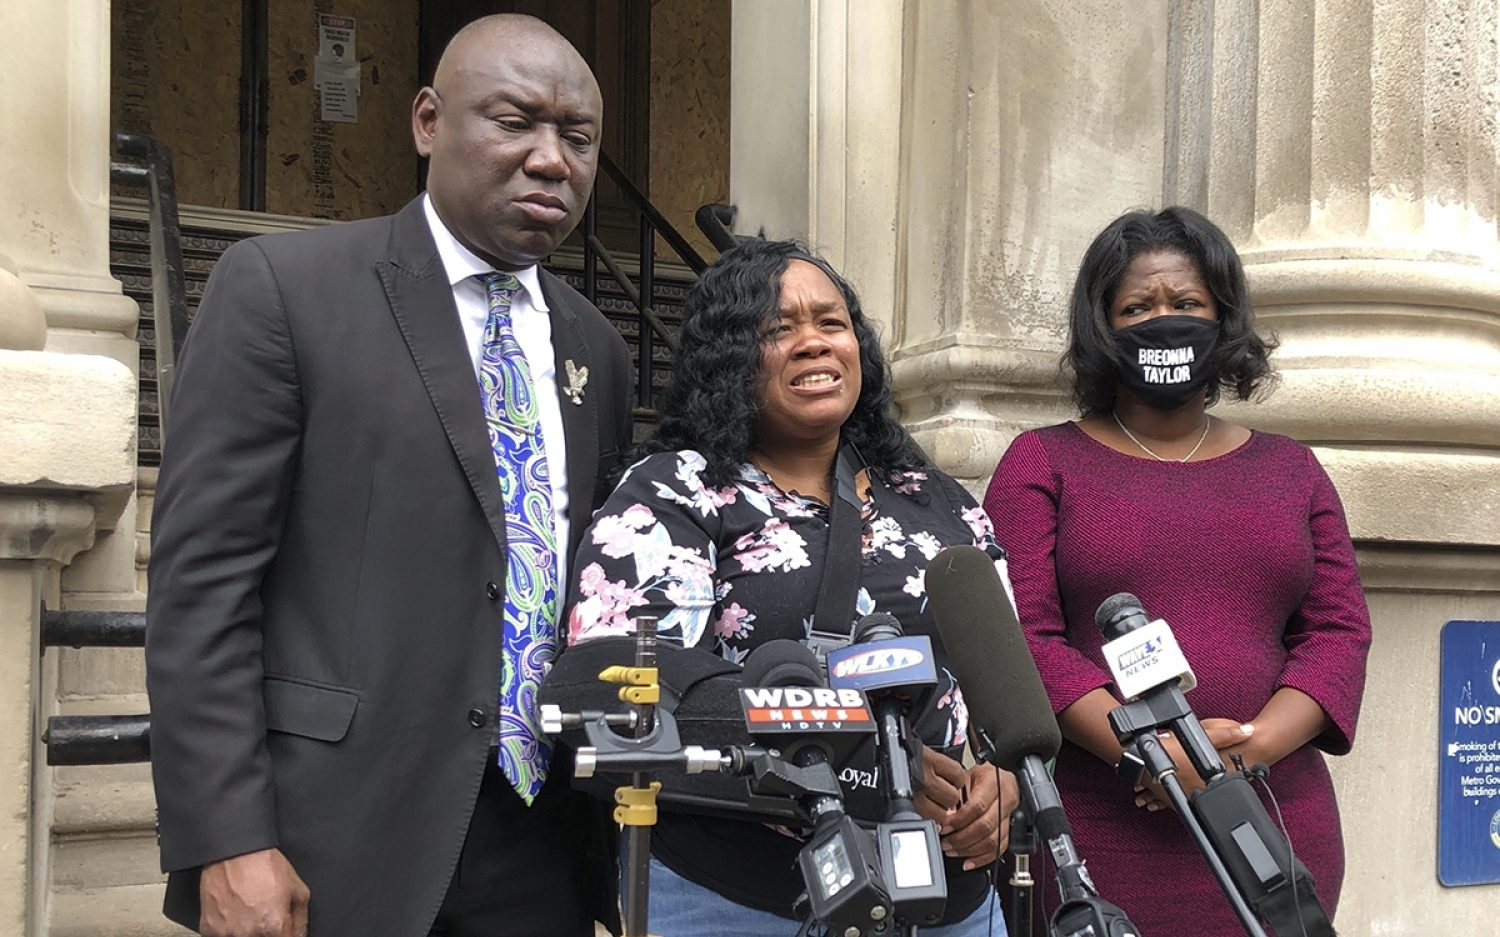 Louisville settles with Breonna Taylor's mother